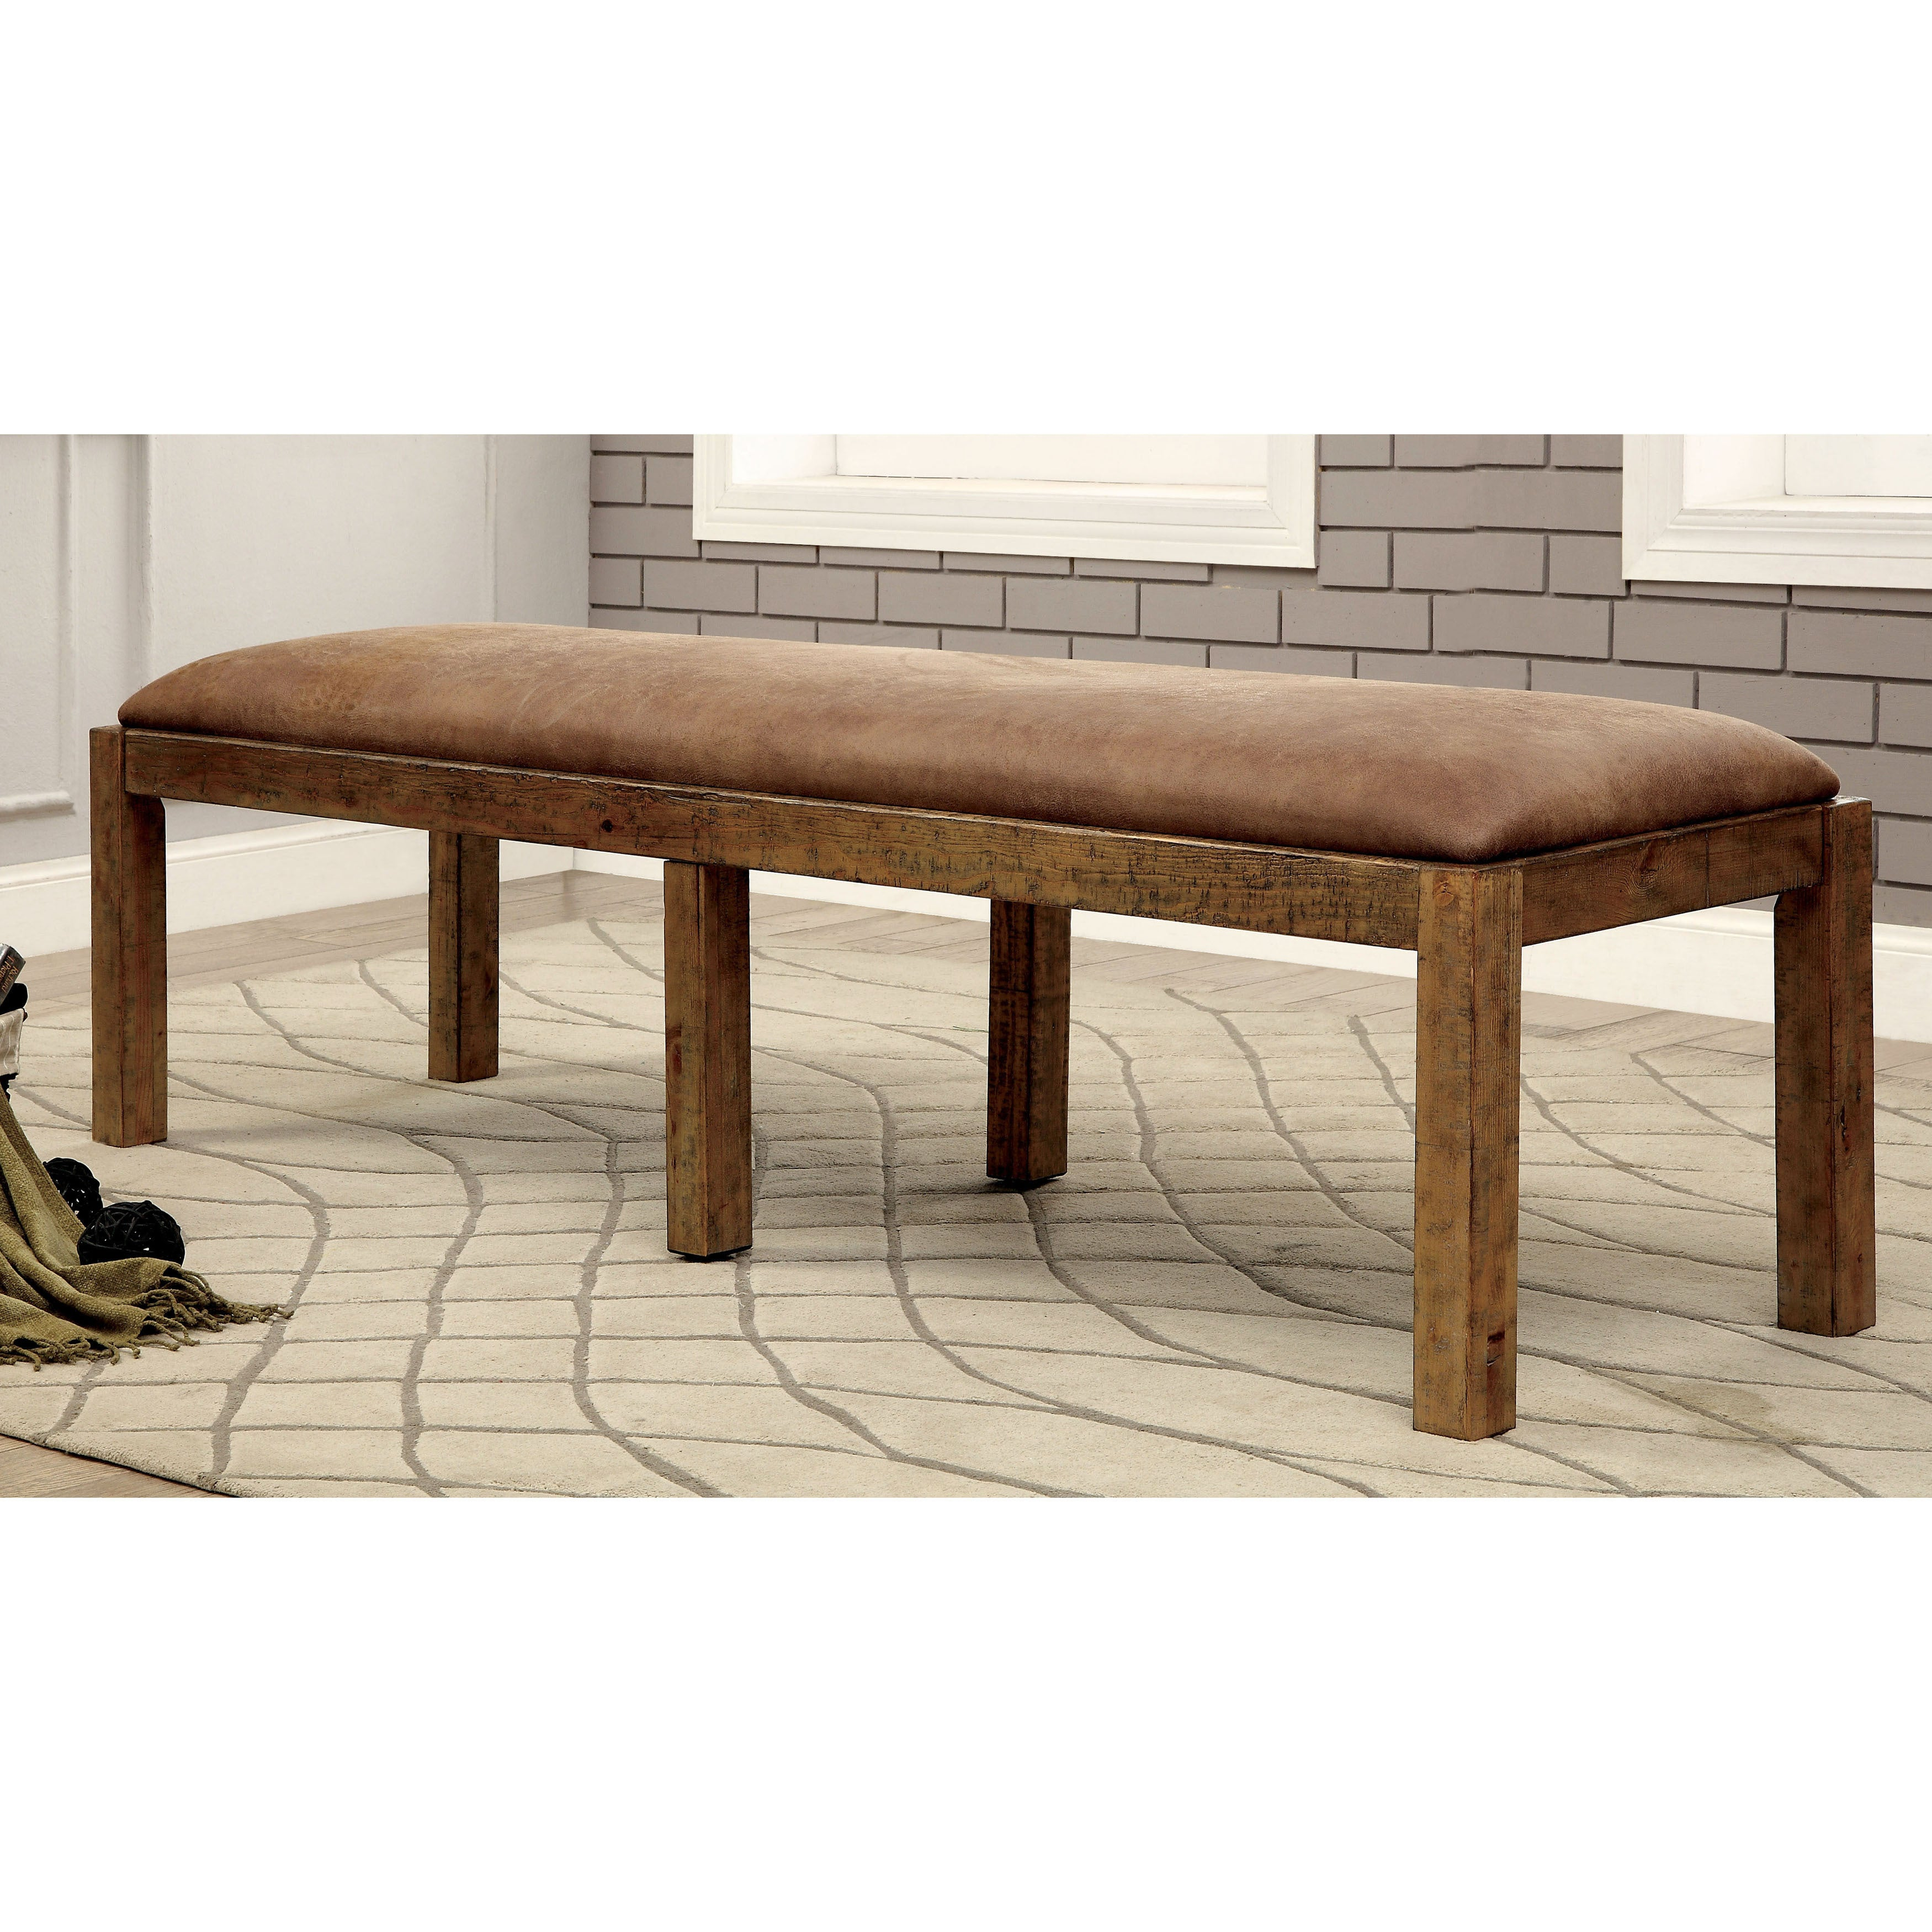 Shop furniture of america matthias industrial rustic pine upholstered dining bench free shipping today overstock com 11149921